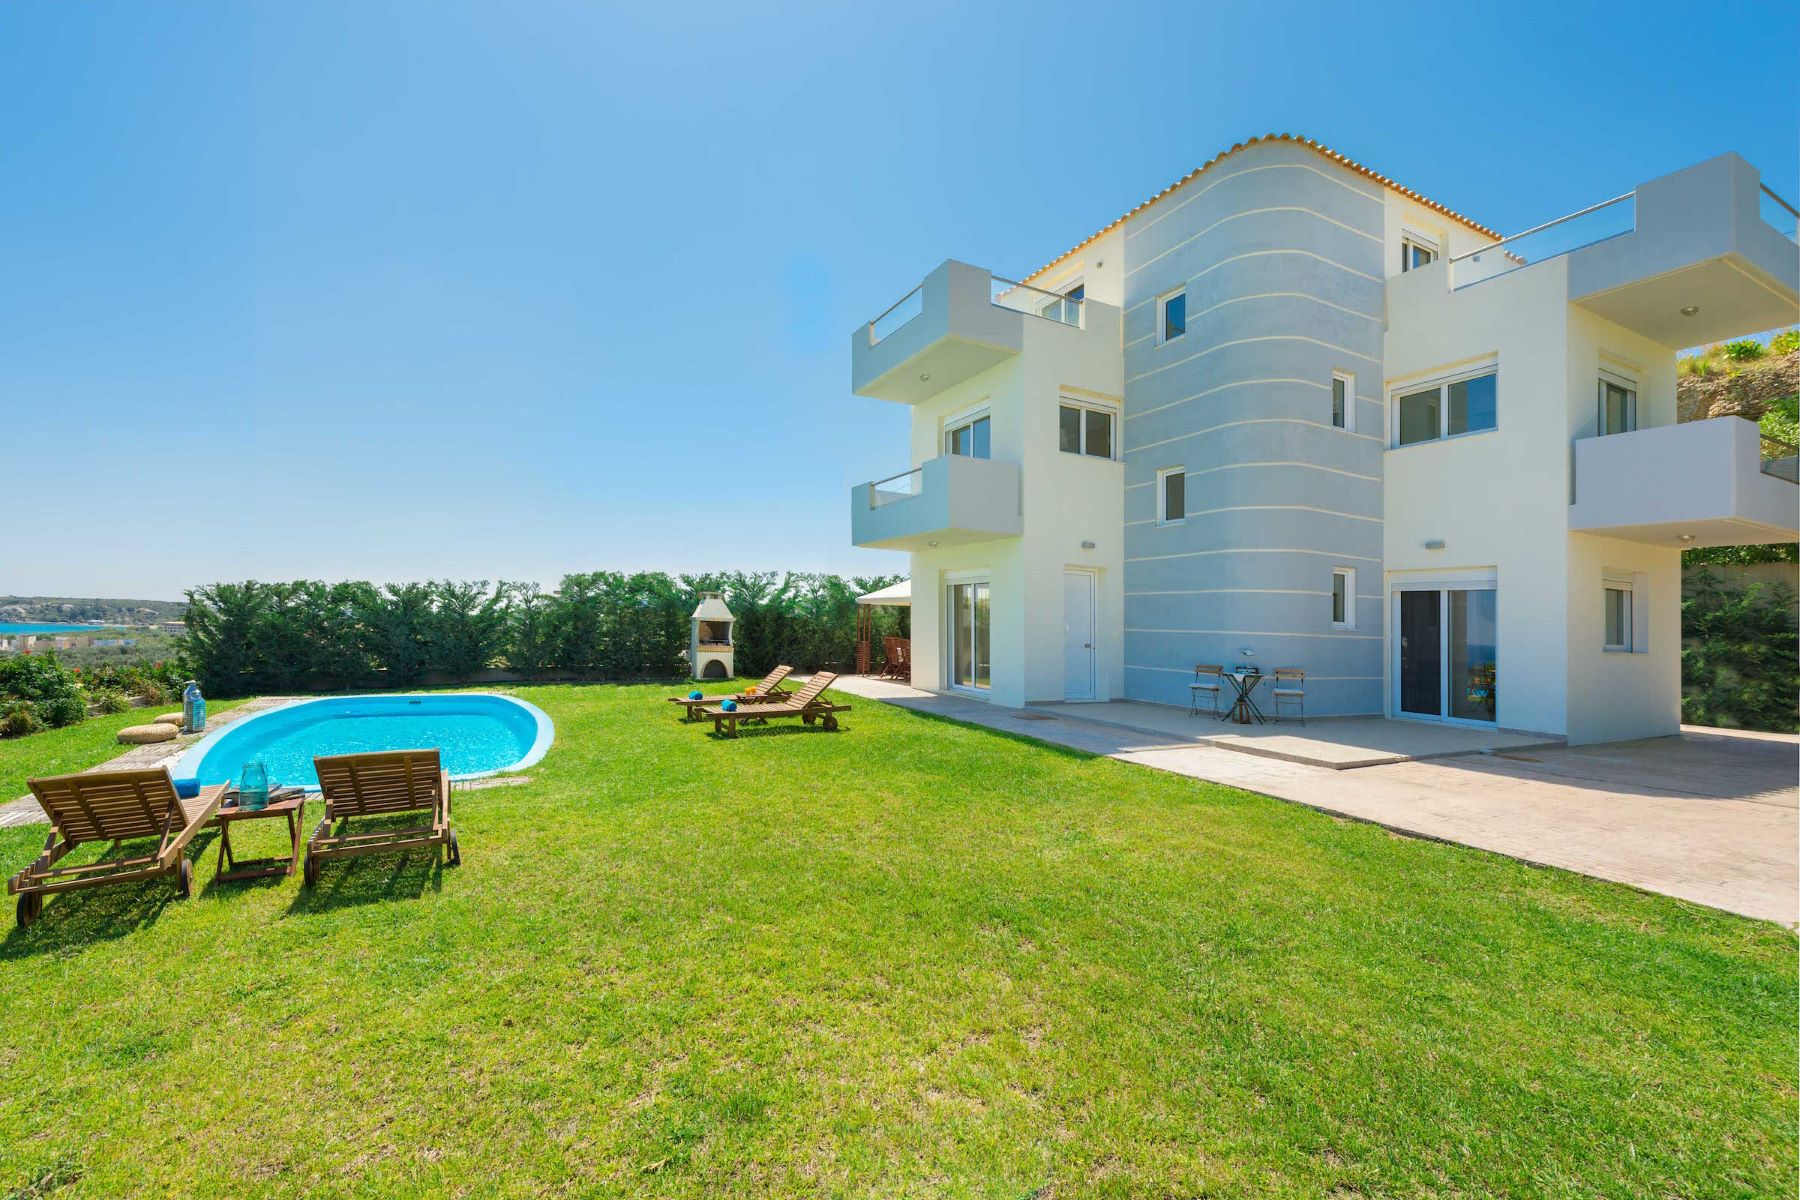 Single Family Home for Sale at Hill Top Views Trapezia, Afandou Hilltop Views Rhodes, Southern Aegean, 85103 Greece